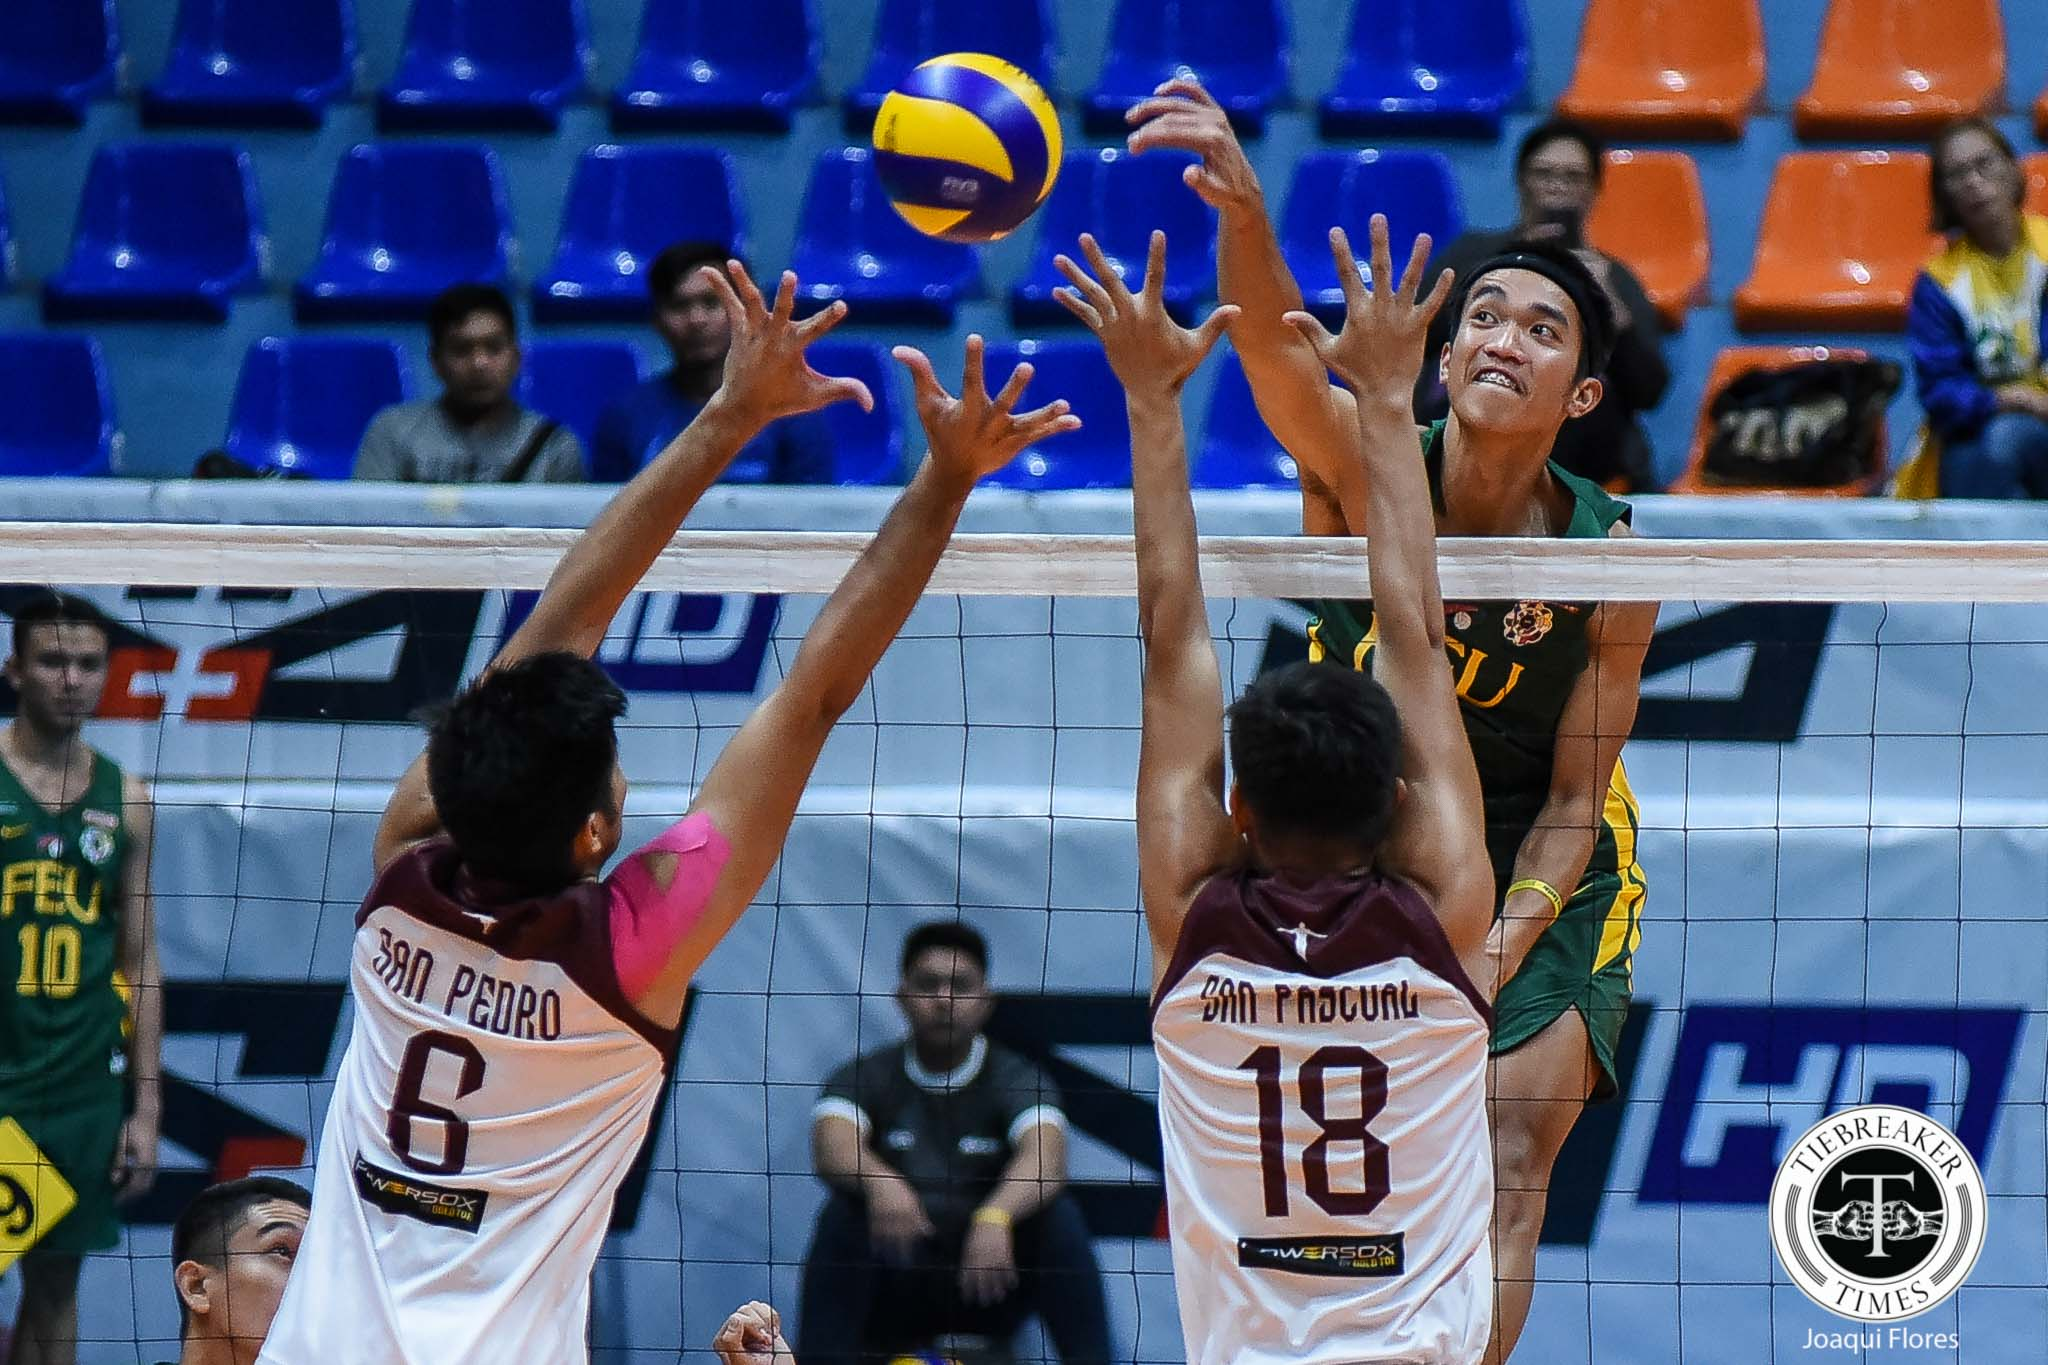 Tiebreaker Times FEU Tamaraws stump UP for second win FEU News UAAP UP Volleyball  UP Men's Volleyball UAAP Season 81 Men's Volleyball UAAP Season 81 Richard Solis Rey Diaz Owen Suarez Mark Millete JP Bugaoan Jerry San Pedro Jeremiah Barrica Hans Chuacuco FEU Men's Volleyball